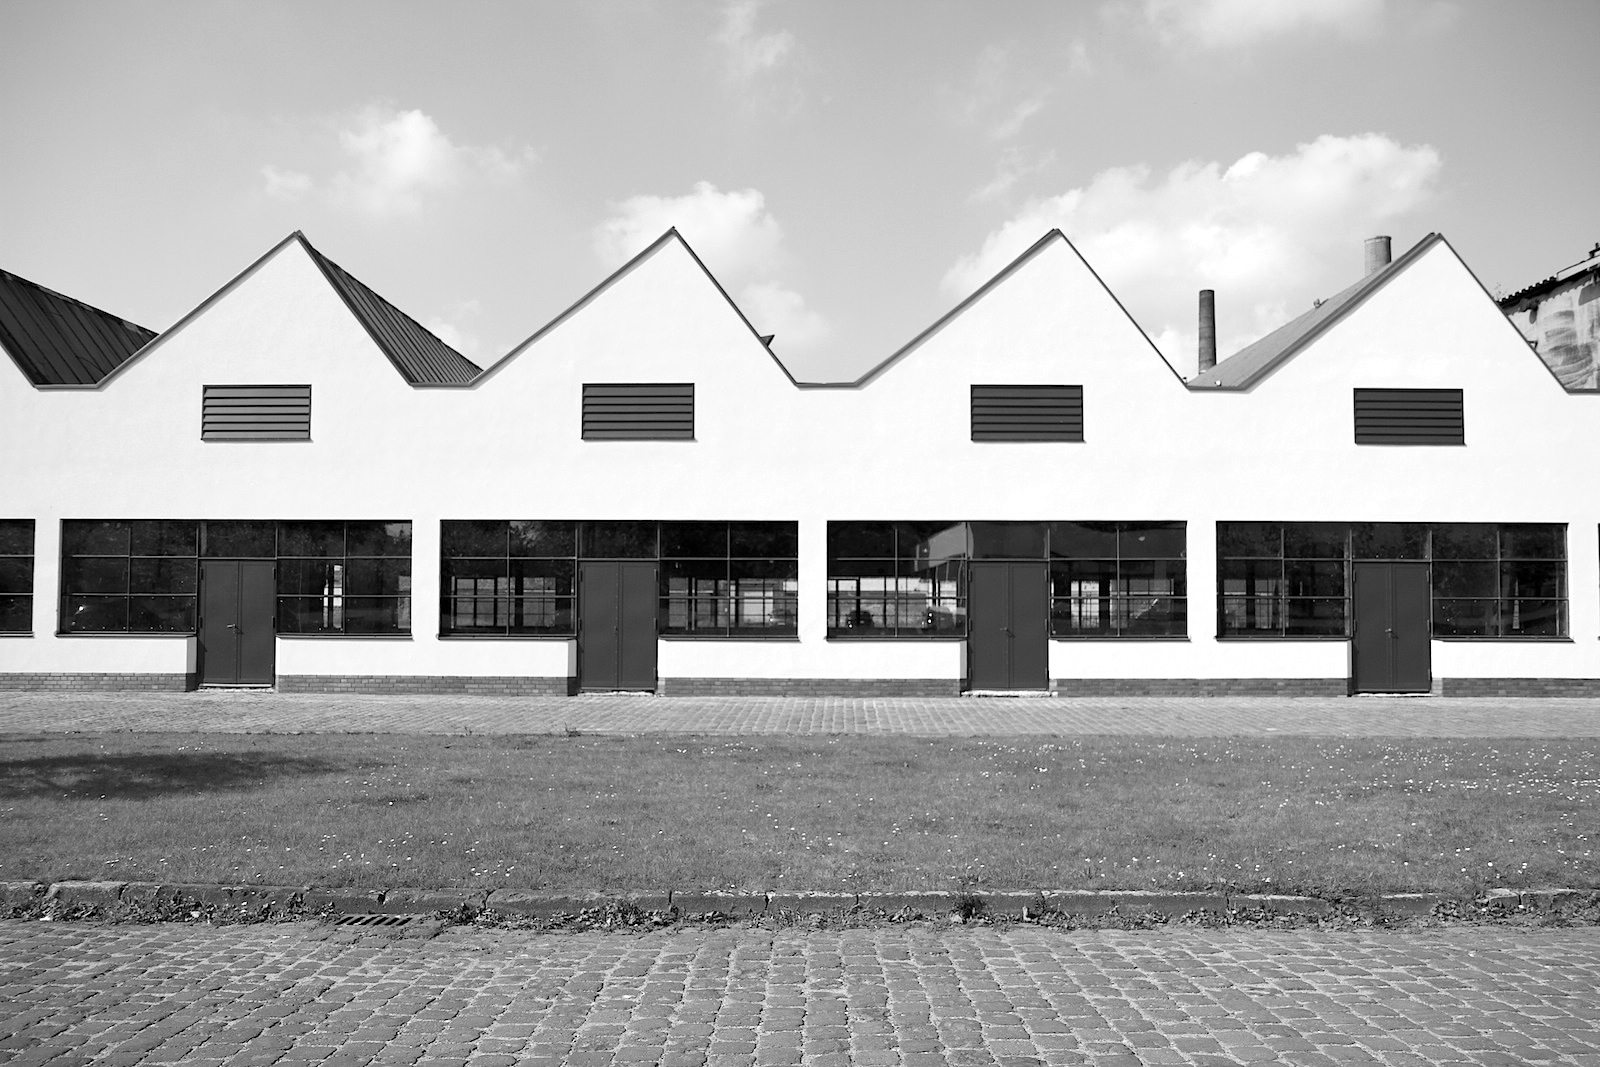 THE LINK to #urbanana: Bauhaus in Krefeld, 2/2